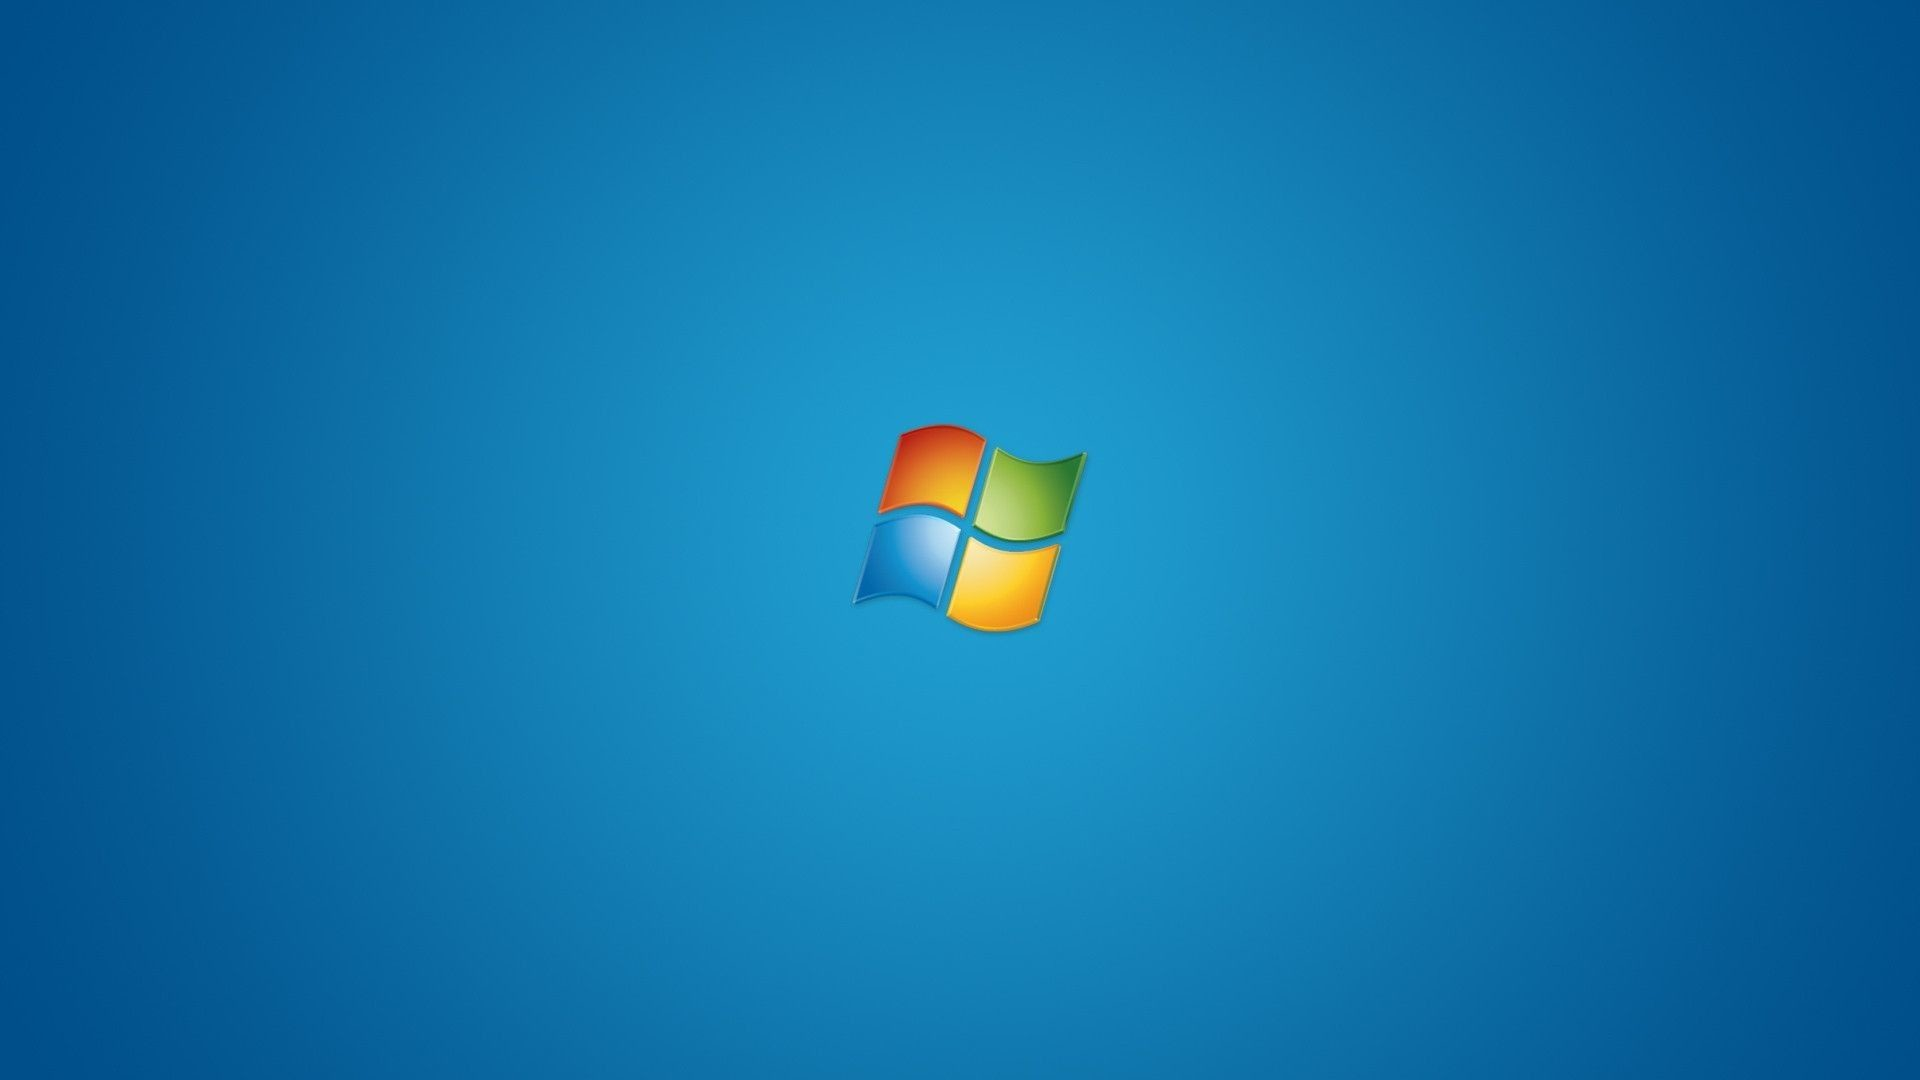 1920x1080 ... Microsoft Office Wallpaper themes 67 Images Lovely Microsoft Office  themes Download ...